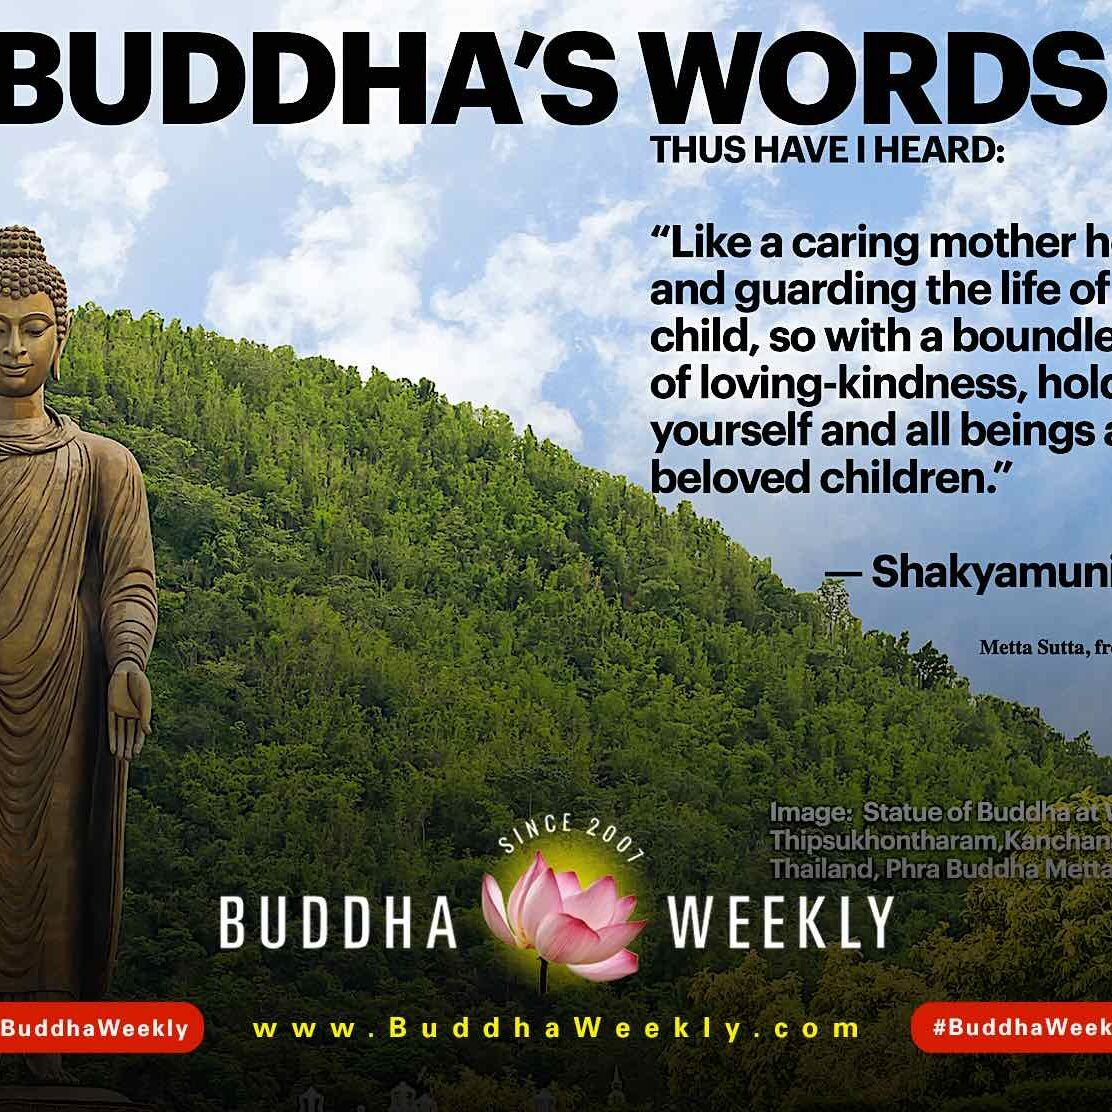 New series on Buddha Weekly: In Buddha's Words. Actual verified Quotable quotes from the Buddha with citations from source.